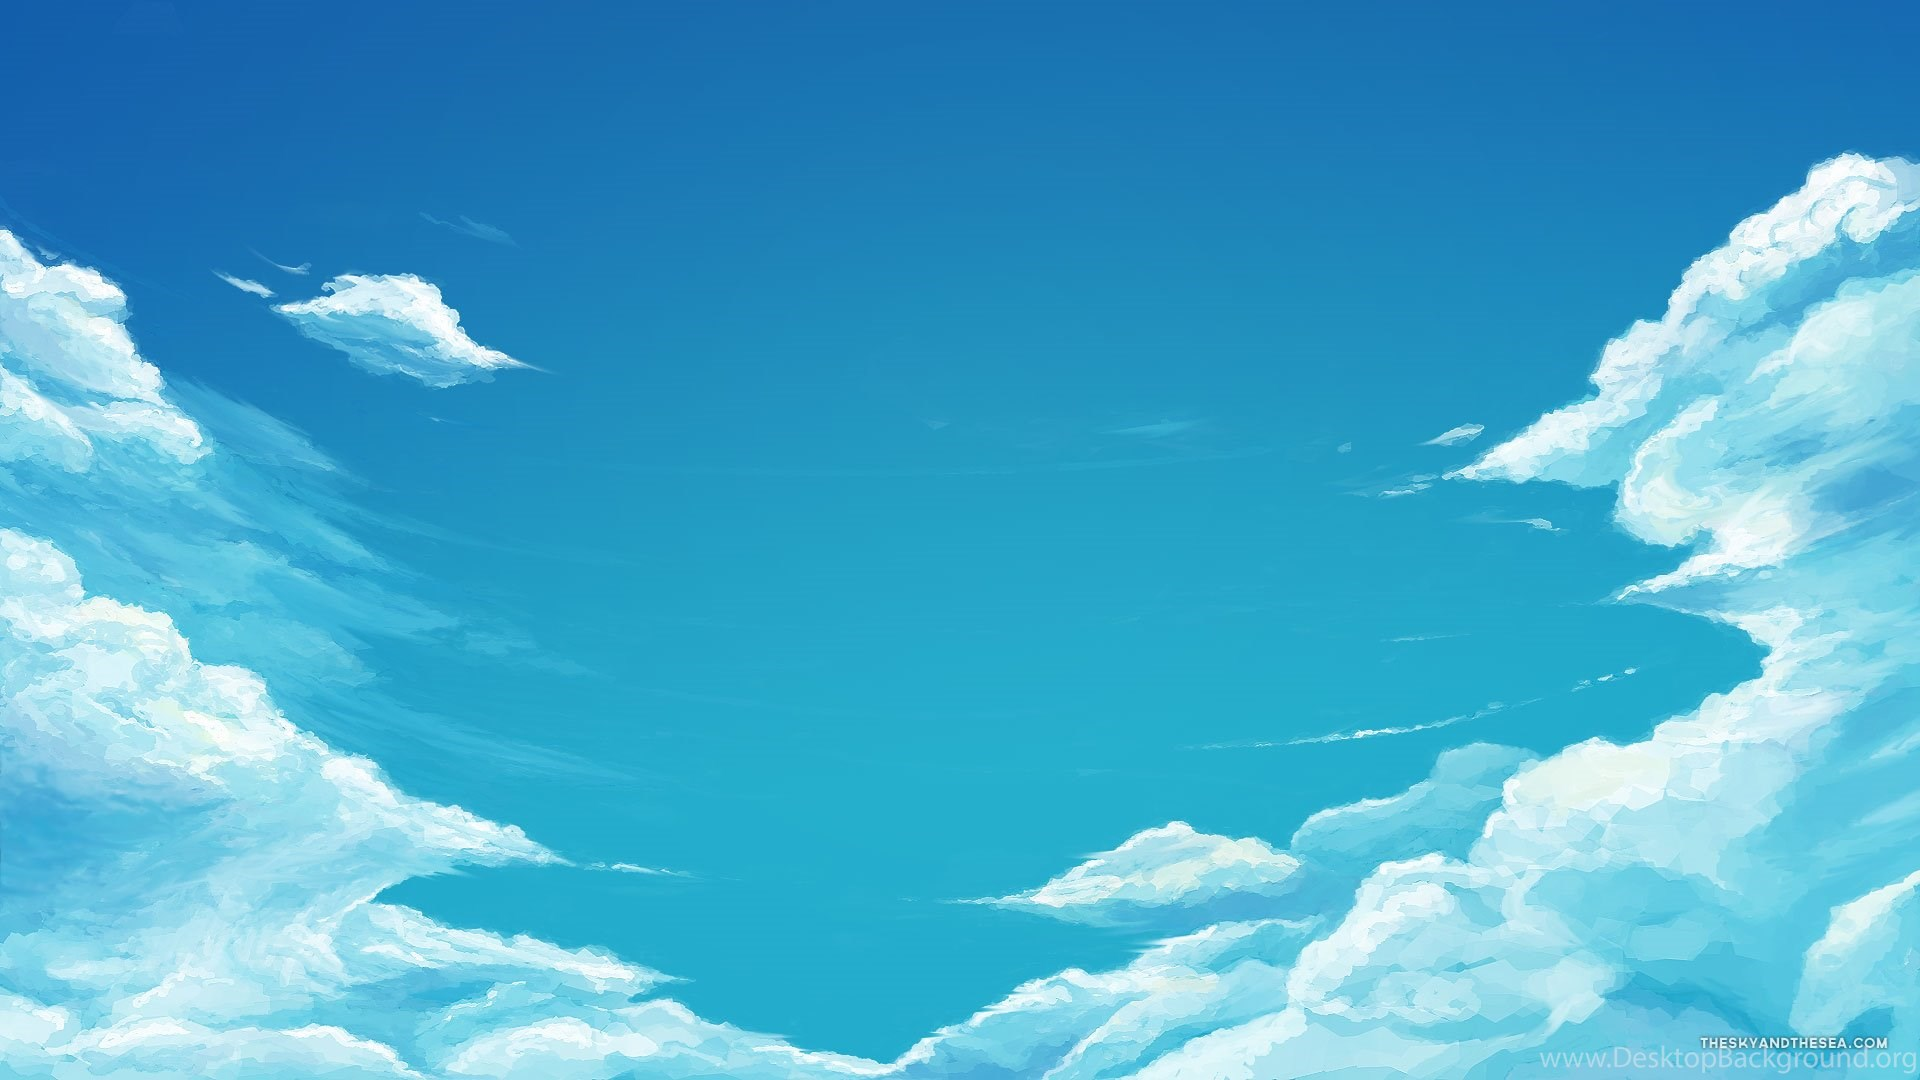 Anime Sky Blue 1920x1080 Hd Wallpapers And Free Stock Photo